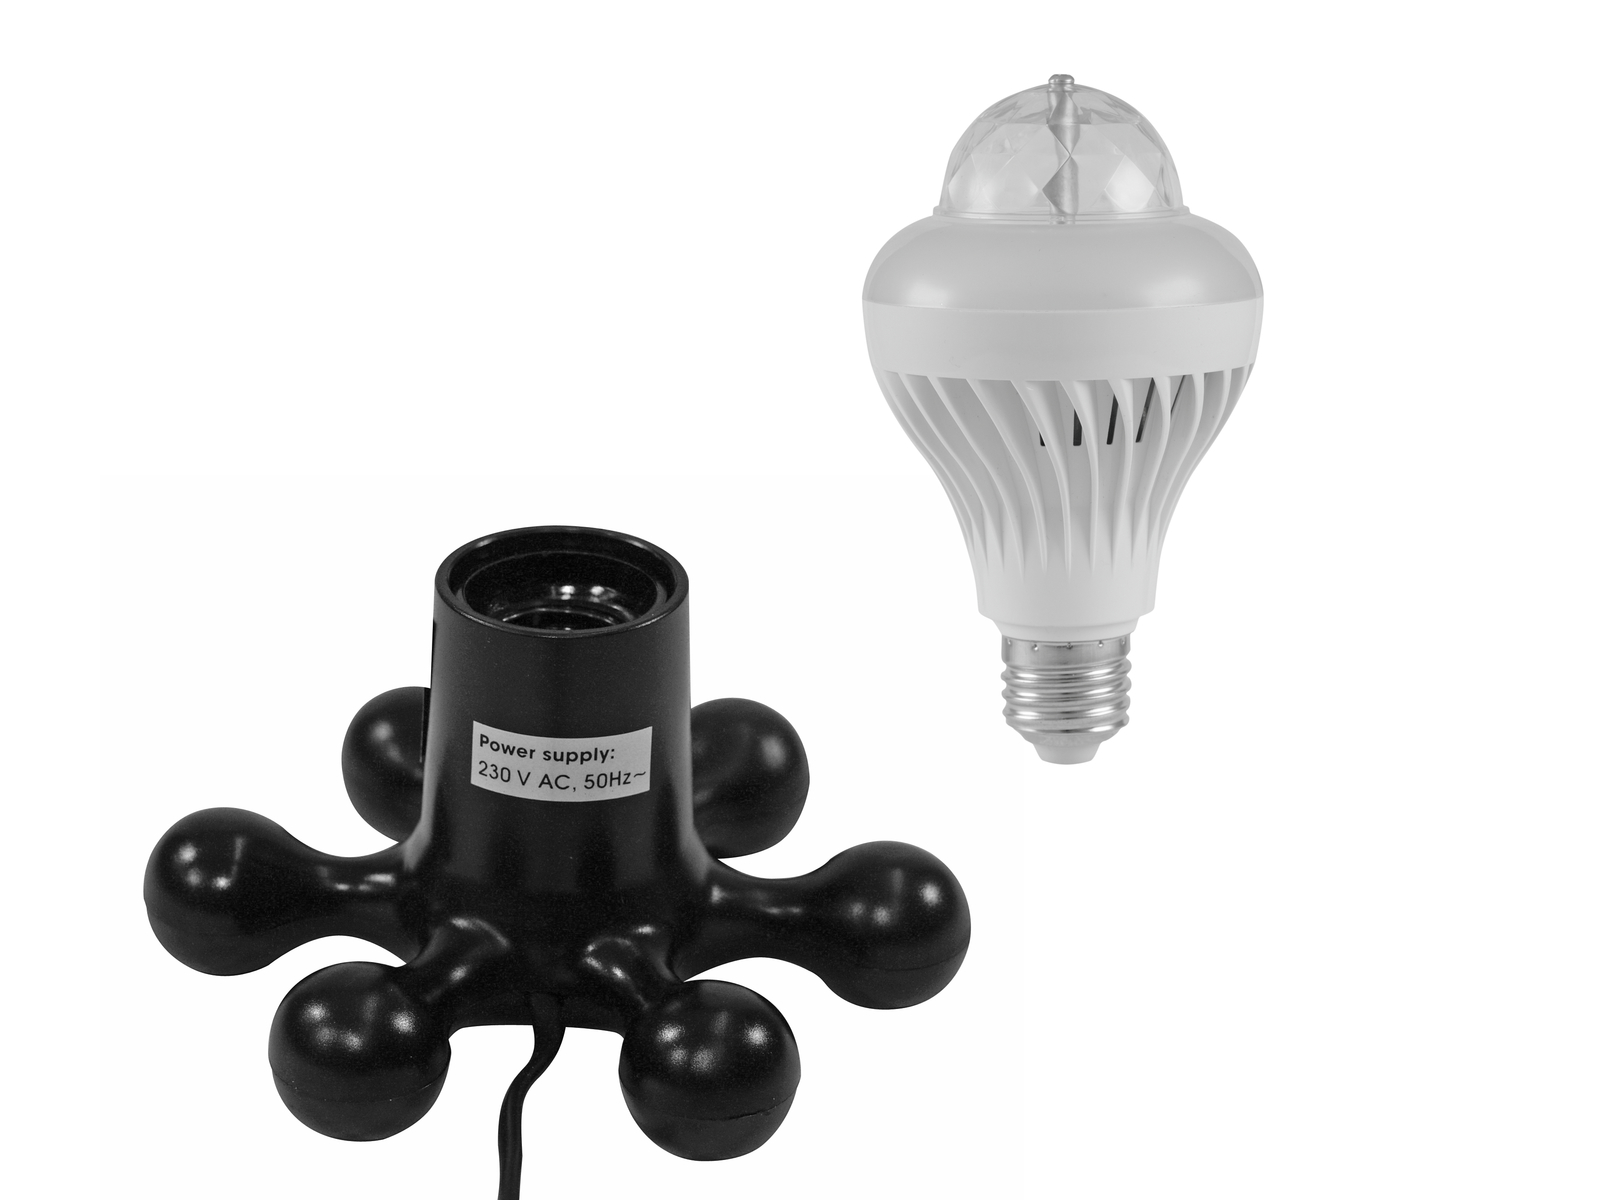 EUROLITE LED di Set di BCL-1 + Hexopus base nera